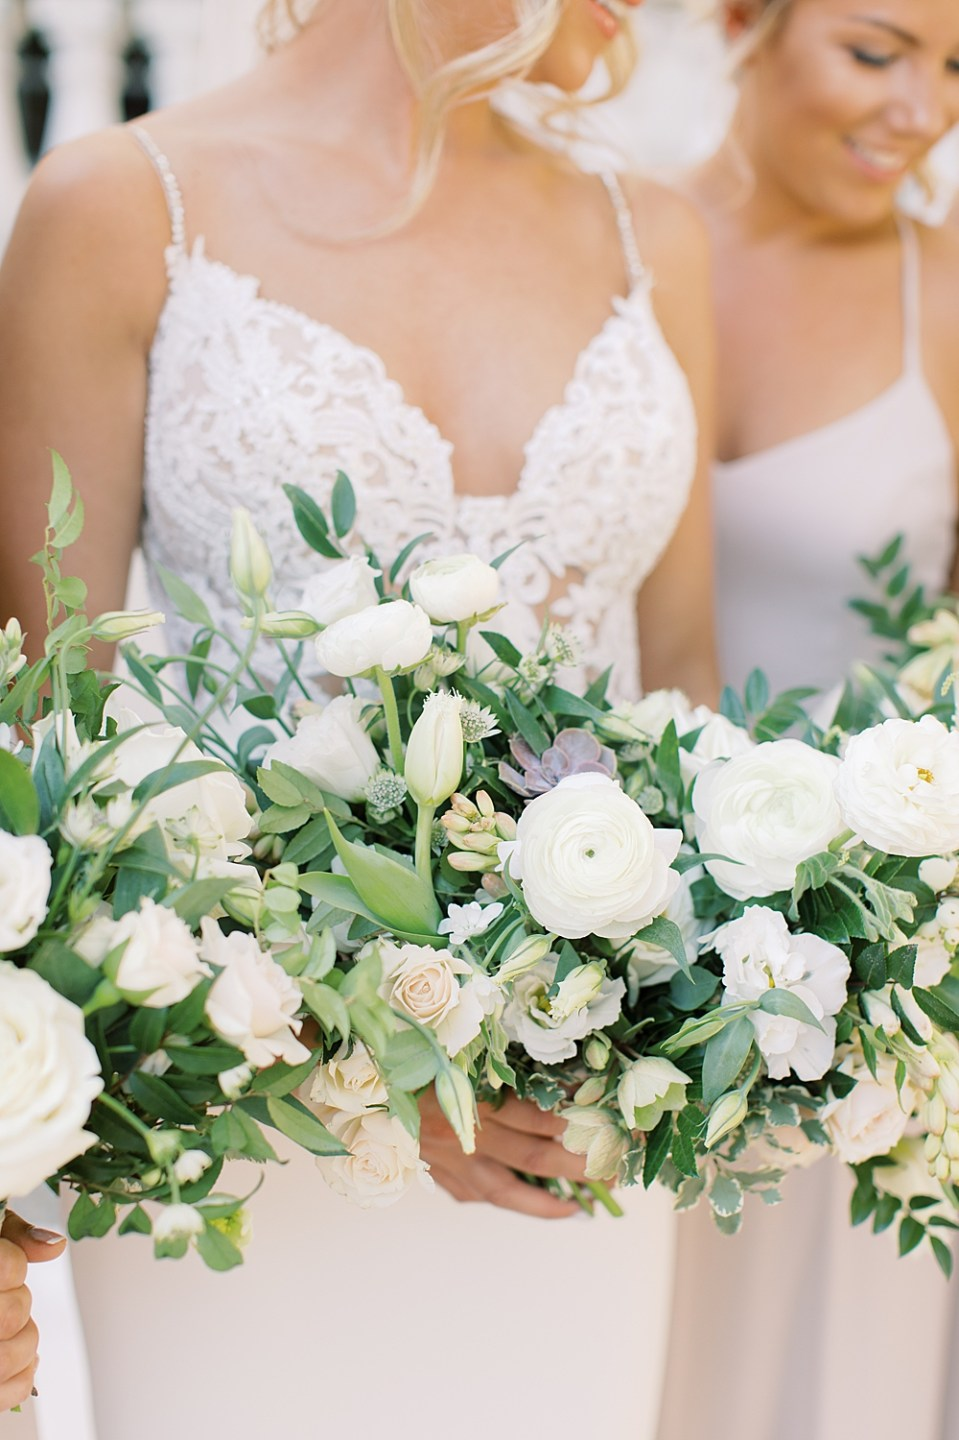 white and blush bridal bouquet by whisper and brook flower co | PA wedding photographer Sarah Canning